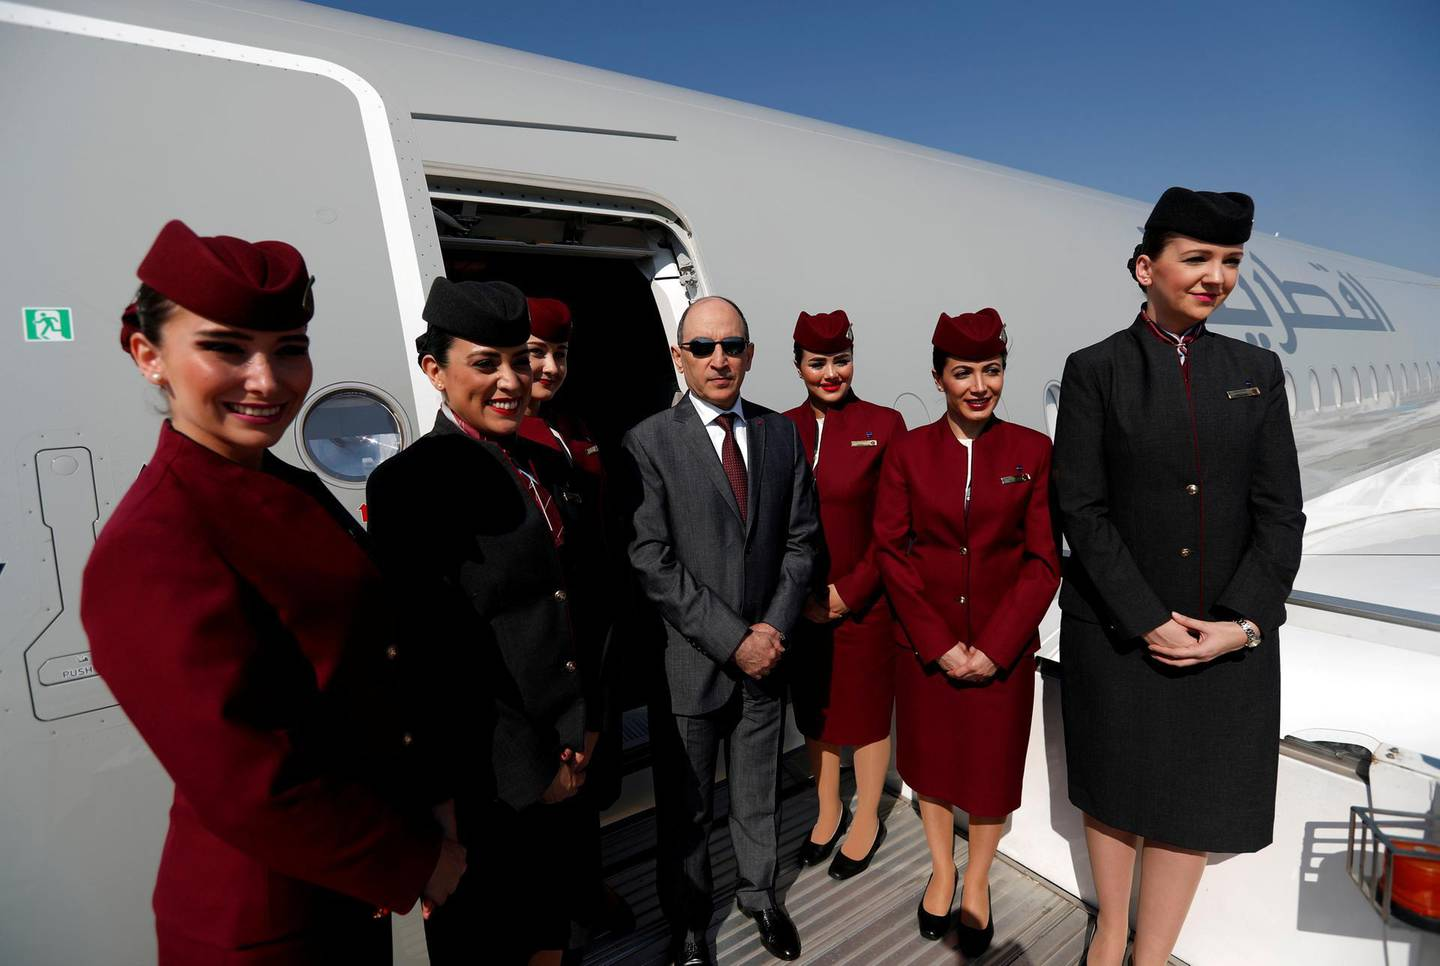 FILE PHOTO: Qatar Airways Chief Executive Officer Akbar al-Baker poses with cabin crew in an Airbus A350-1000 at the Eurasia Airshow in the Mediterranean resort city of Antalya, Turkey April 25, 2018. REUTERS/Murad Sezer/File Photo